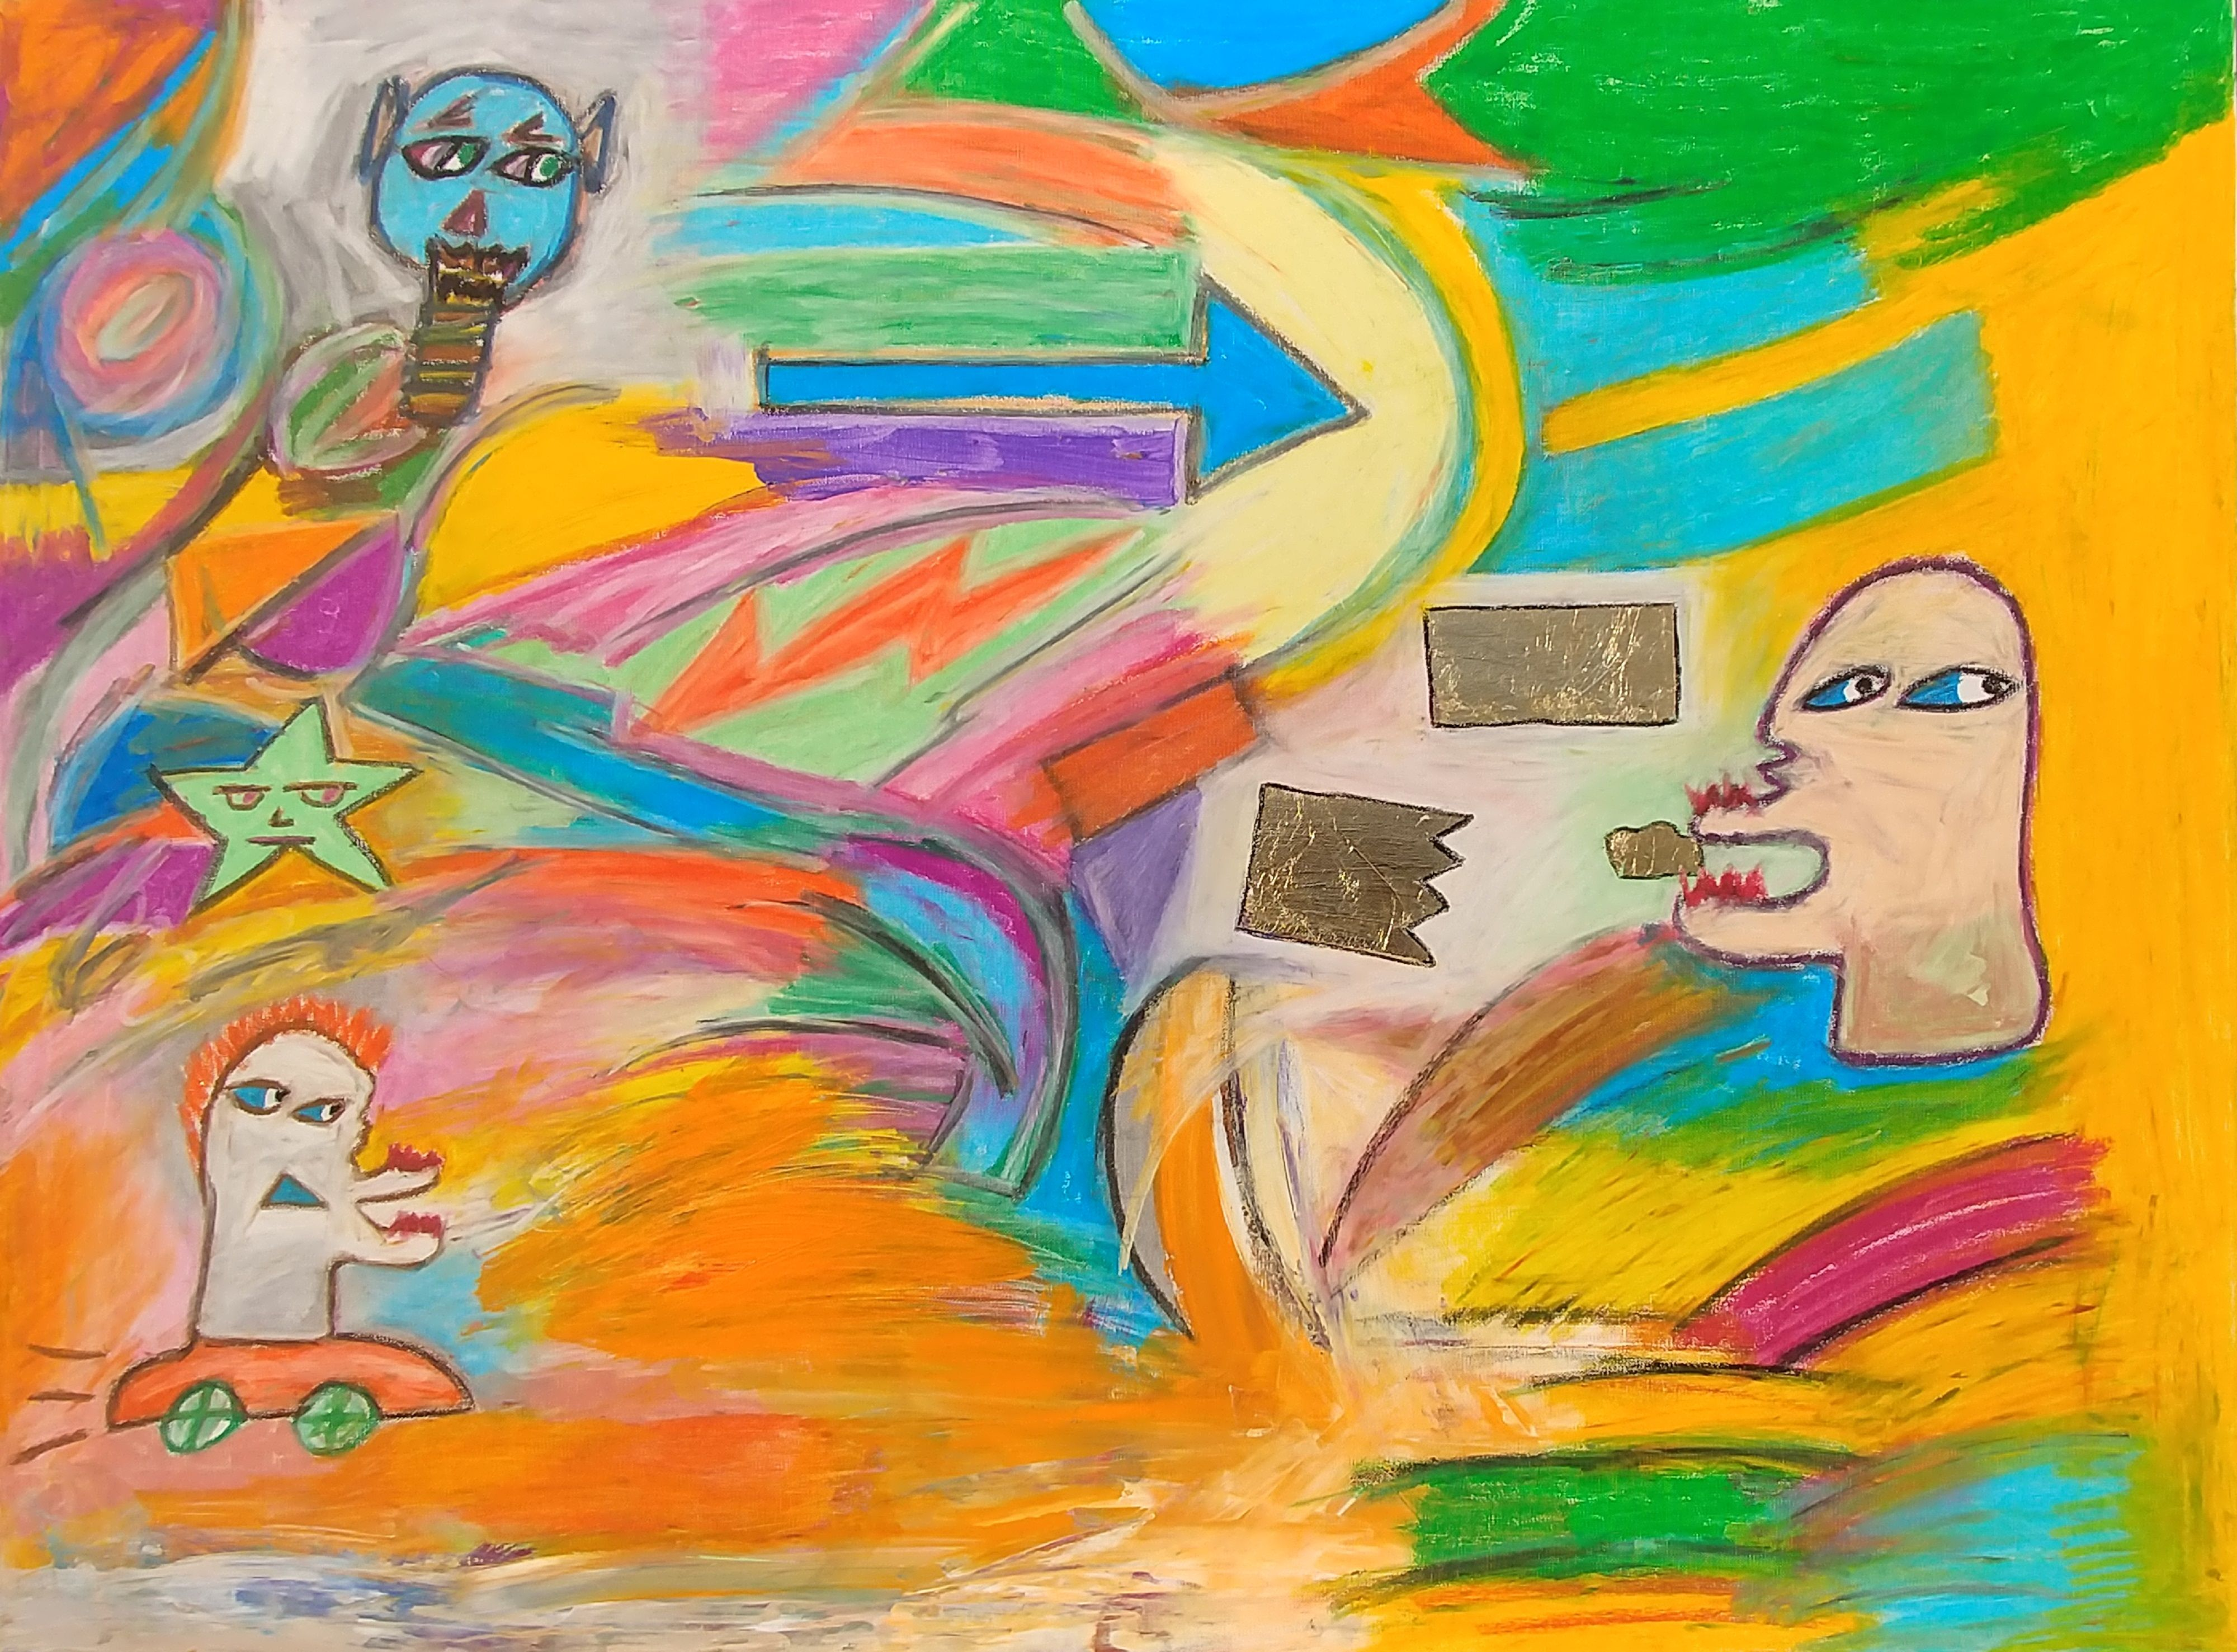 Dr Defiant Pop Art Art Expressionist Painting With Oil Stick